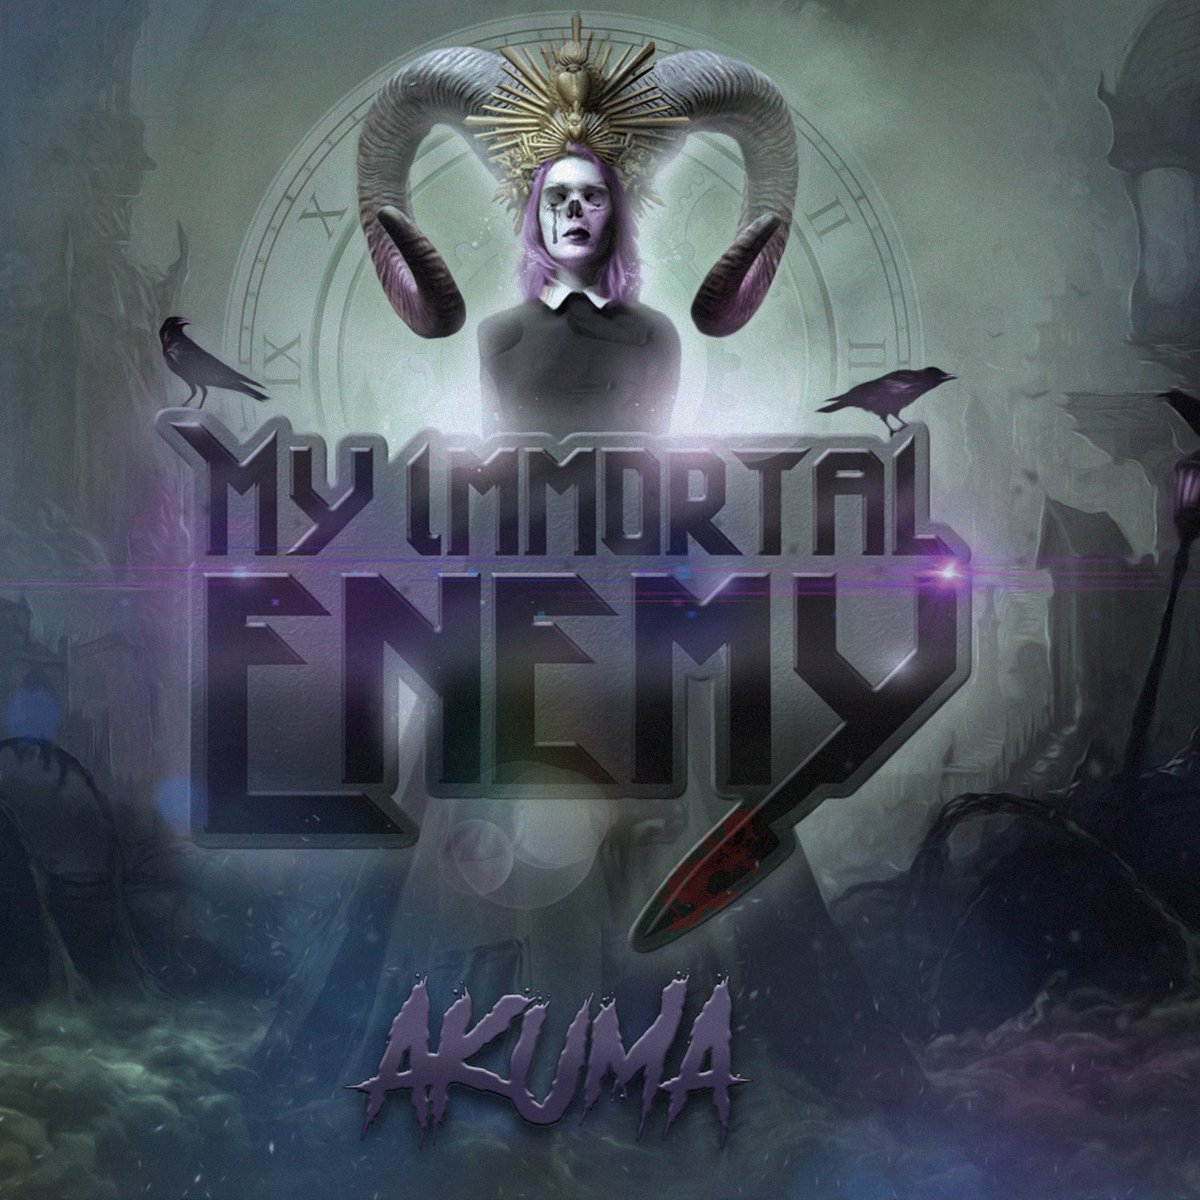 The first album #review of the year is the debut #album, Akuma, from My Immortal Enemy. Check it out on @outrightgeekery before the album drops tomorrow.  https://t.co/8yMEeYLcZK https://t.co/fNjy8T5xl4